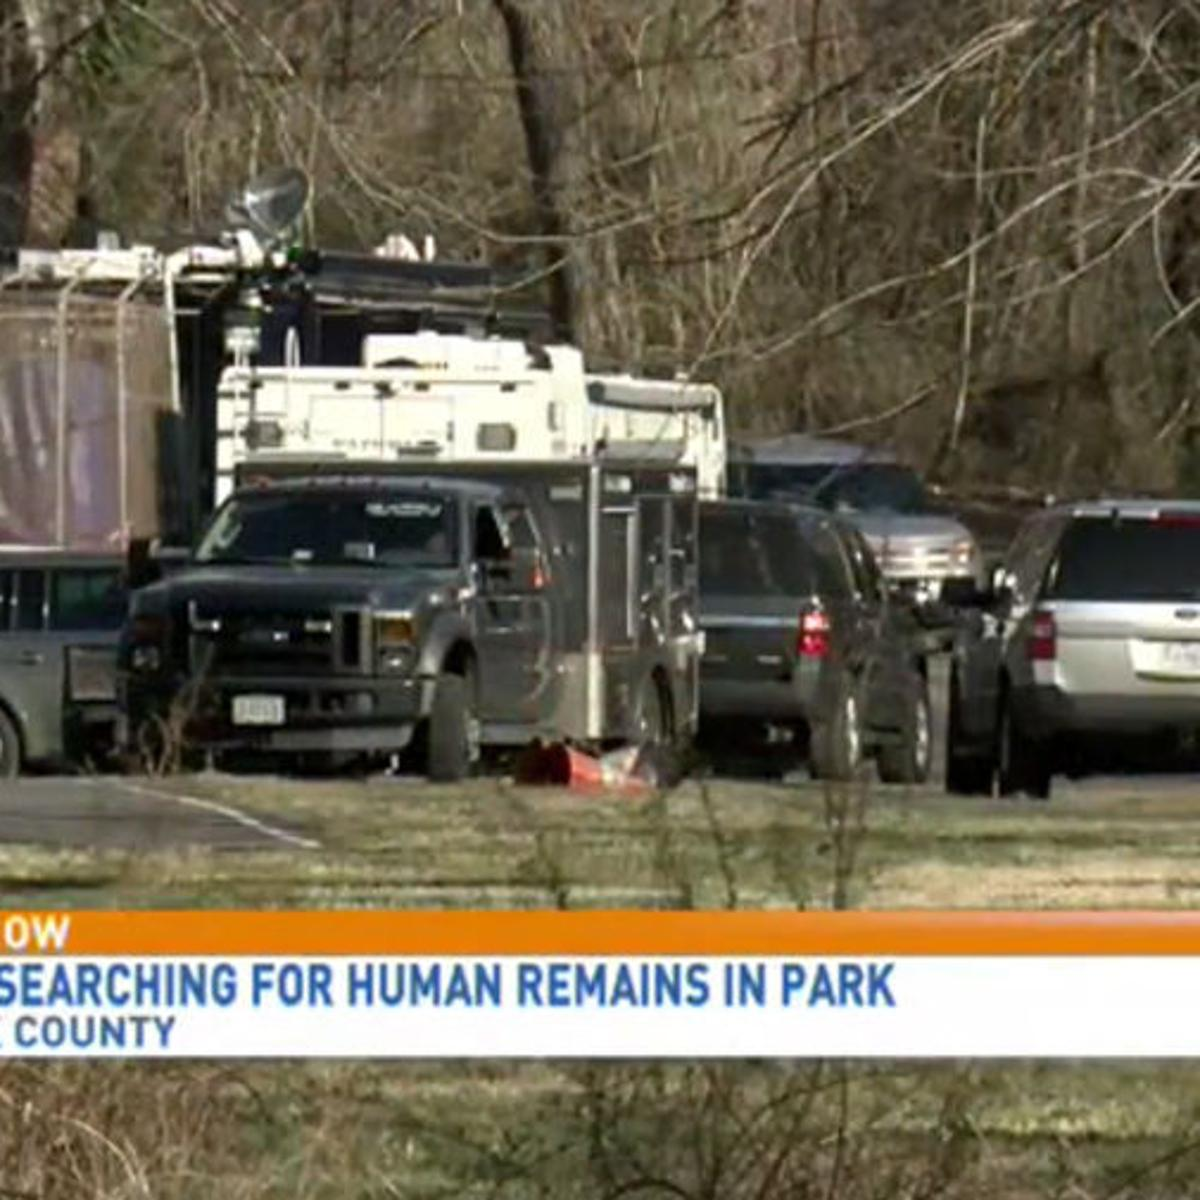 Two sets of human remains found in Fairfax park | State